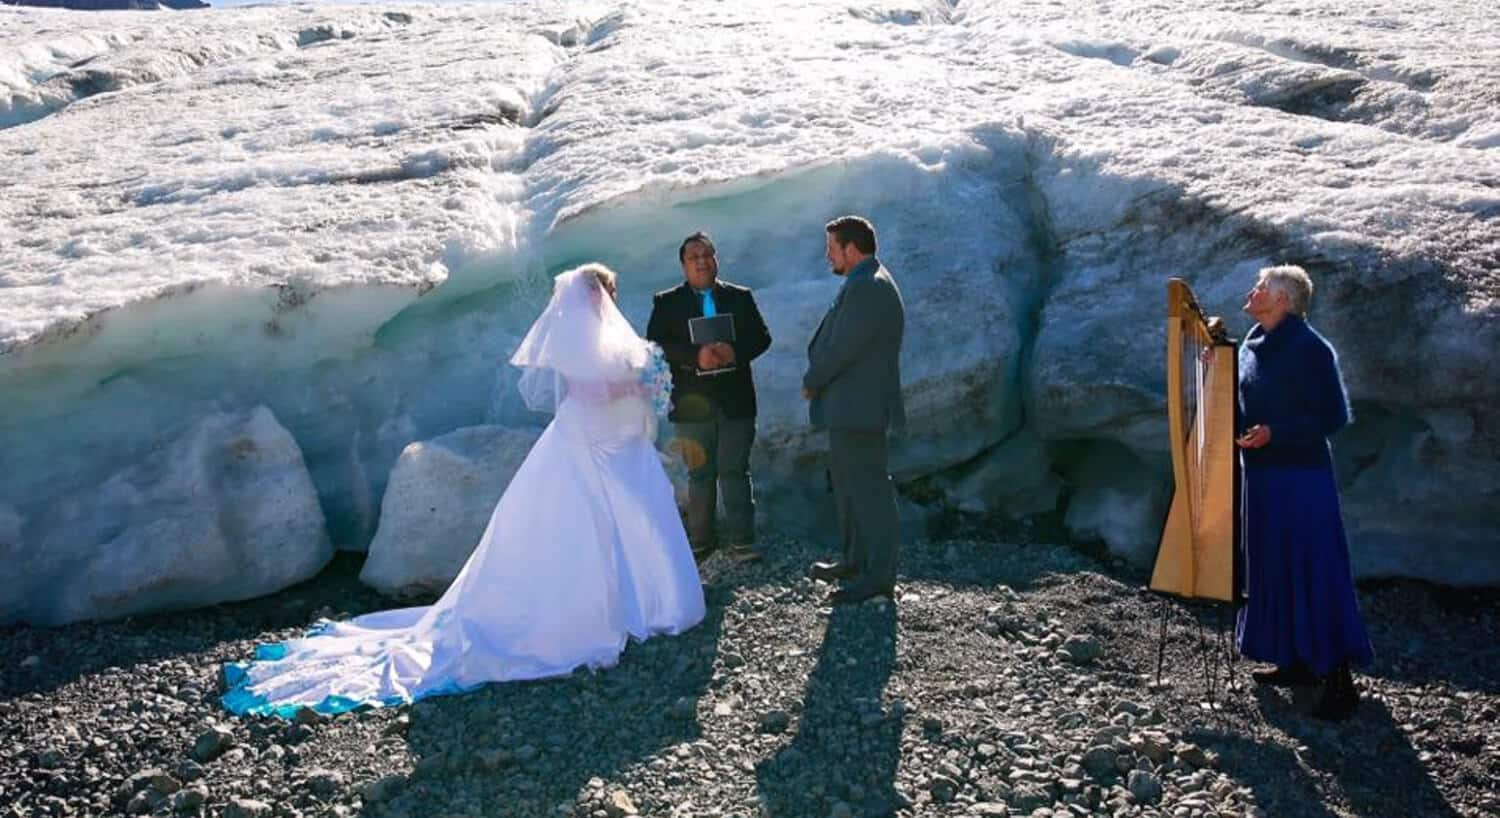 bride with long train laying on ground and groom standing in front of preacher by glacier with woman standing by harp